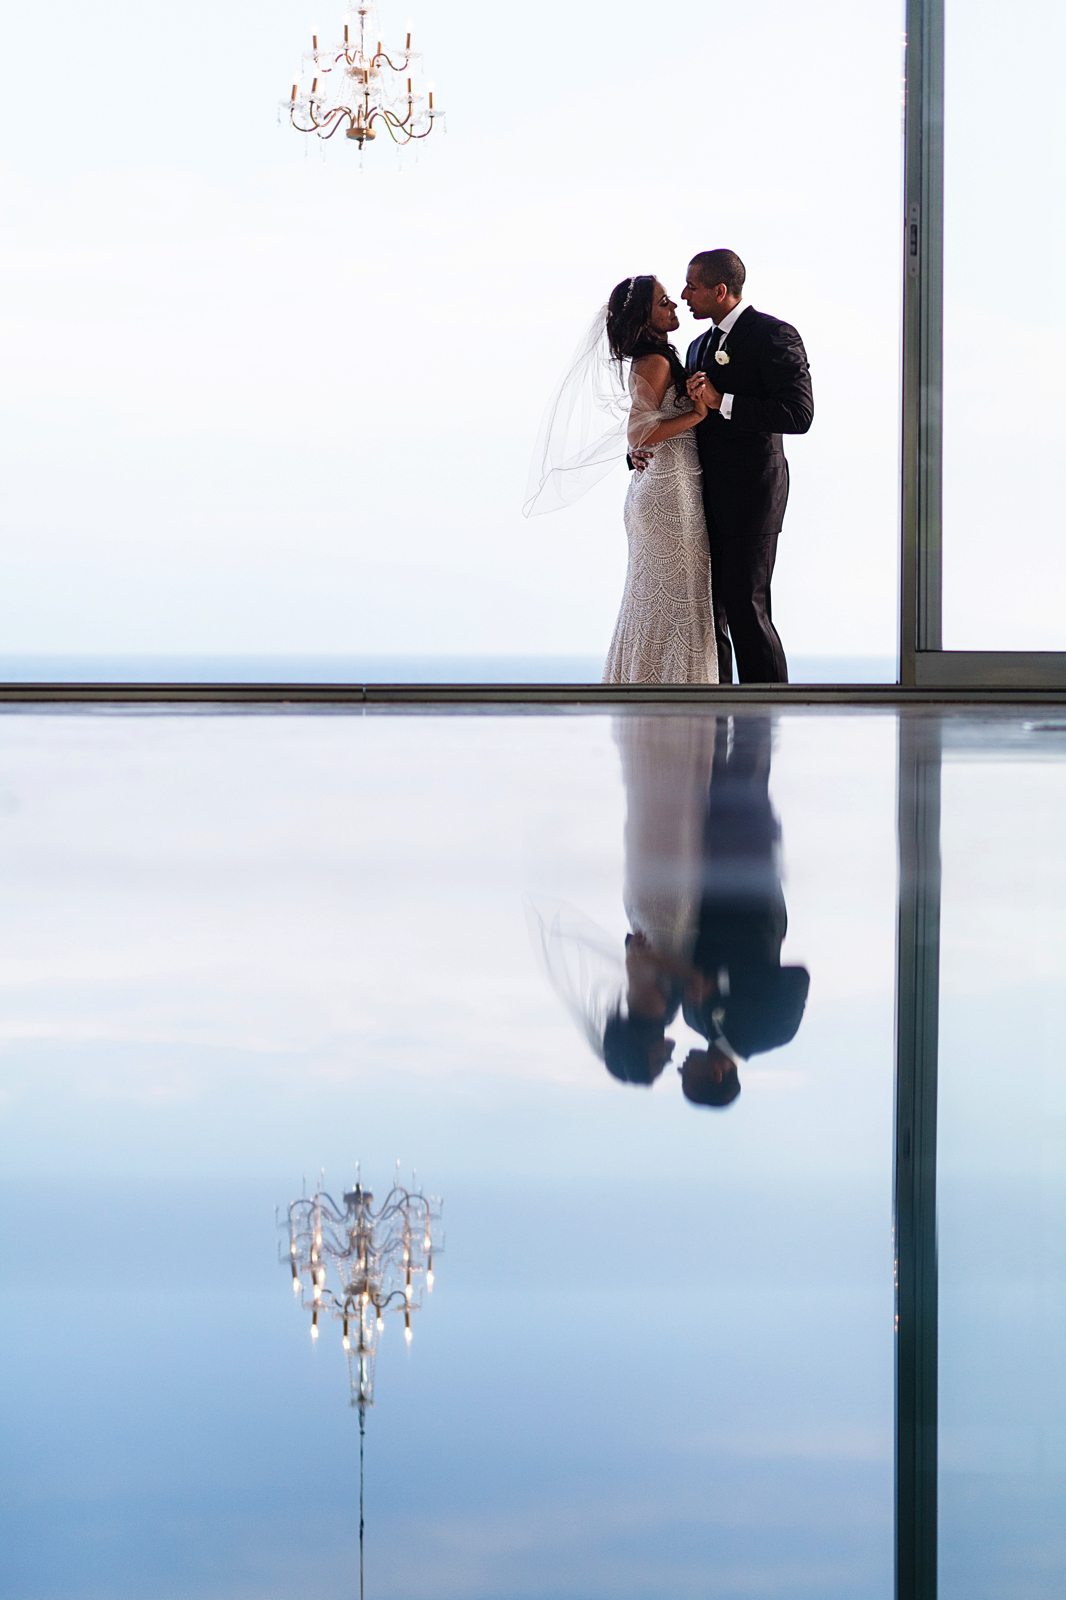 first-dance-couple-reflection